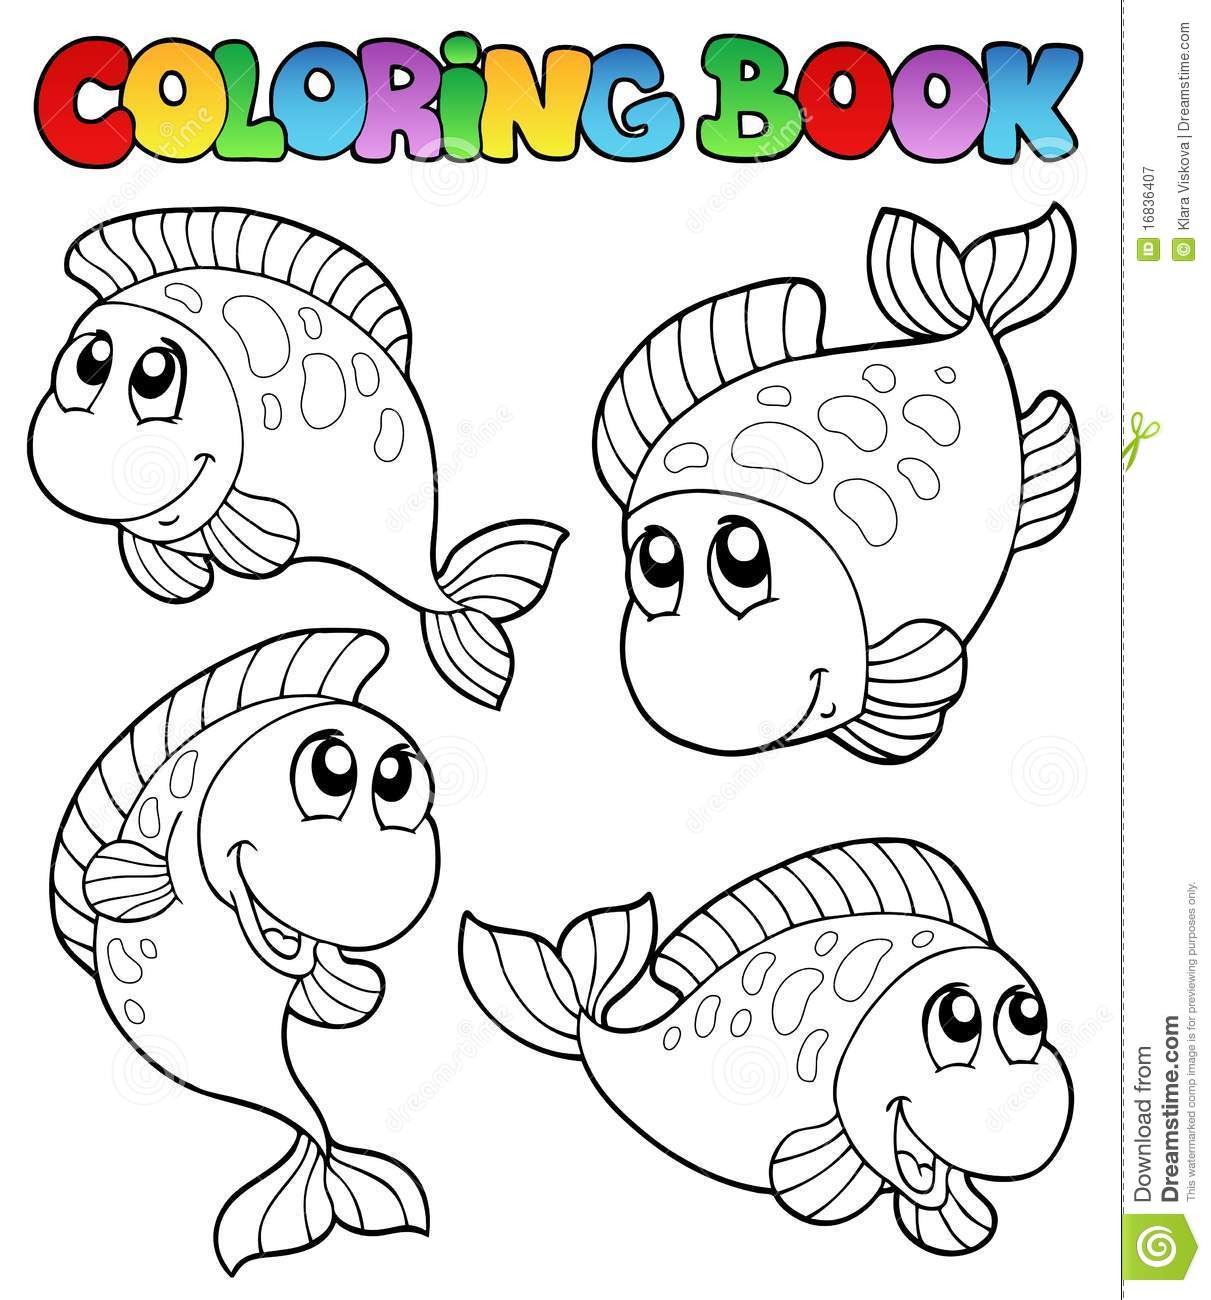 Coloring Book With Four Fishes Royalty Free Stock